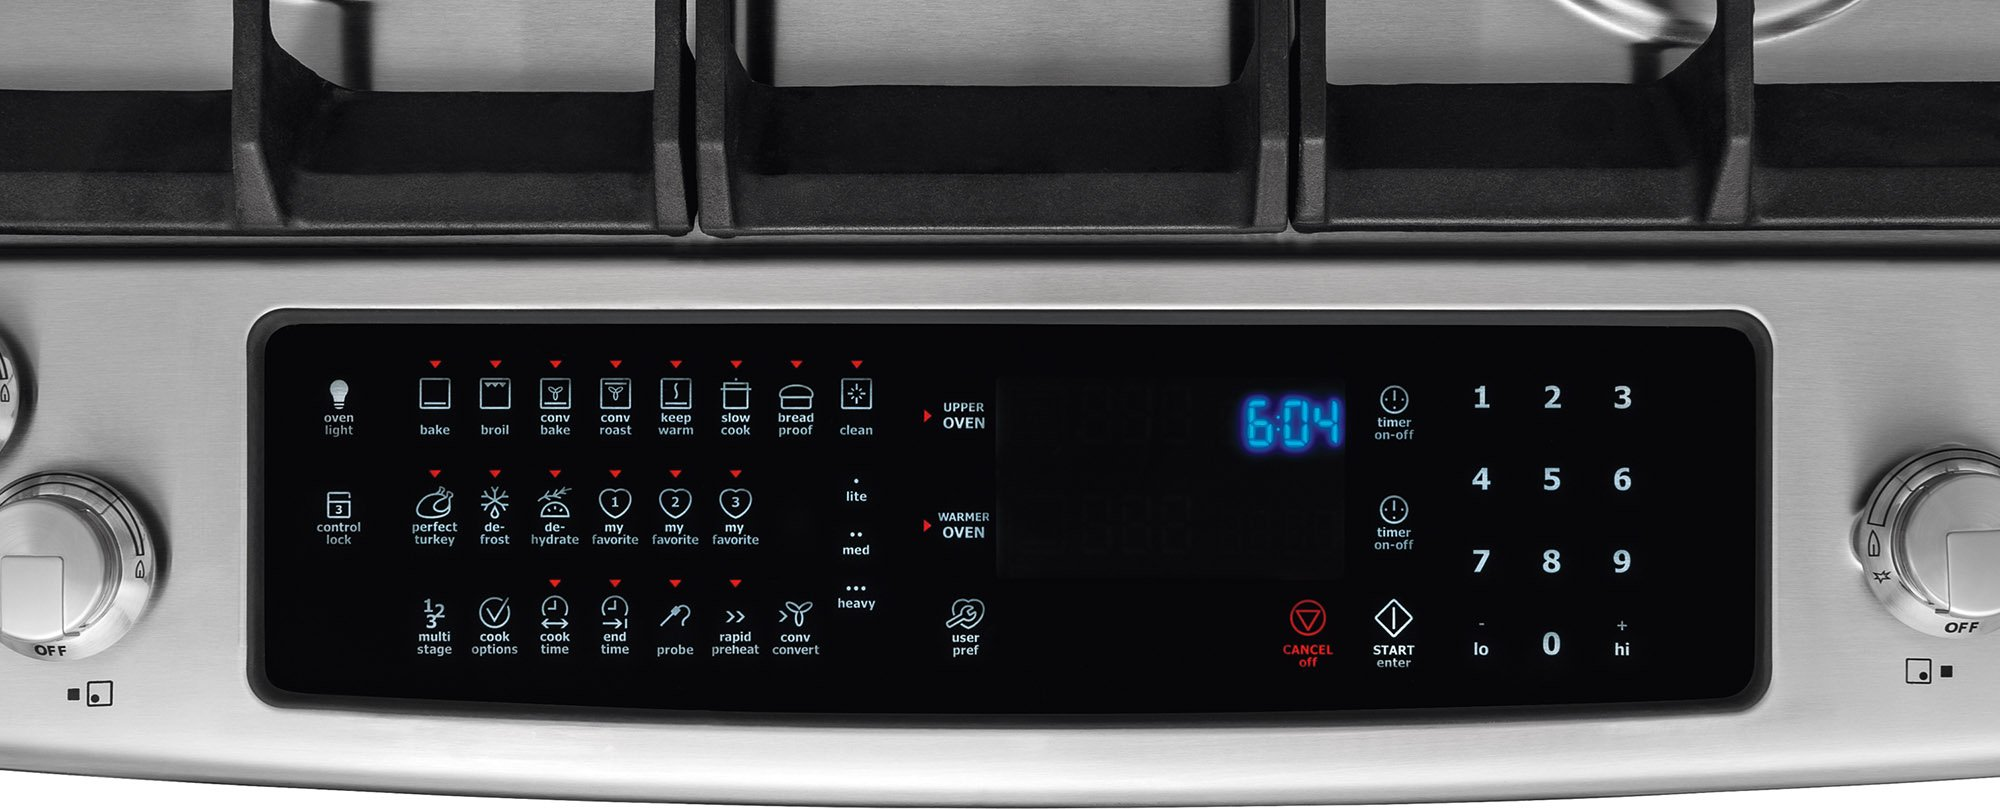 Electrolux EW30GS80RS 30'' Star K ADA Compliant Gas Slide-In Range Oven with 5 Sealed Burners 4.5 cu. ft. Oven Capacity Continuous Grates and Luxury-Glide Oven Rack in Stainless by Electrolux (Image #4)